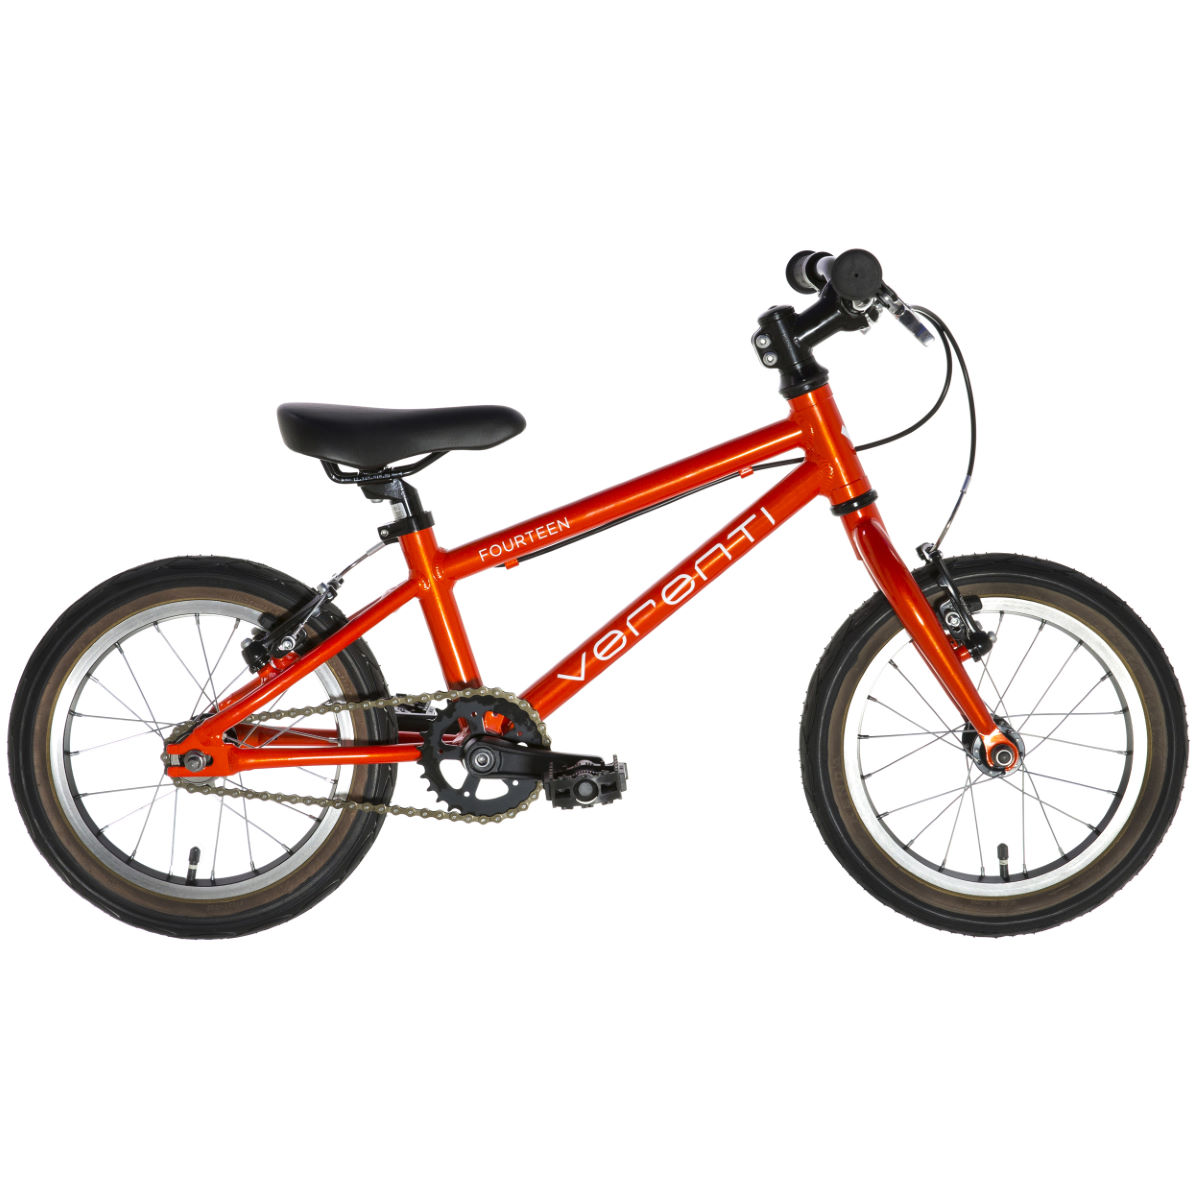 Verenti Fourteen Kids Bike   Kids Bikes  Under 7